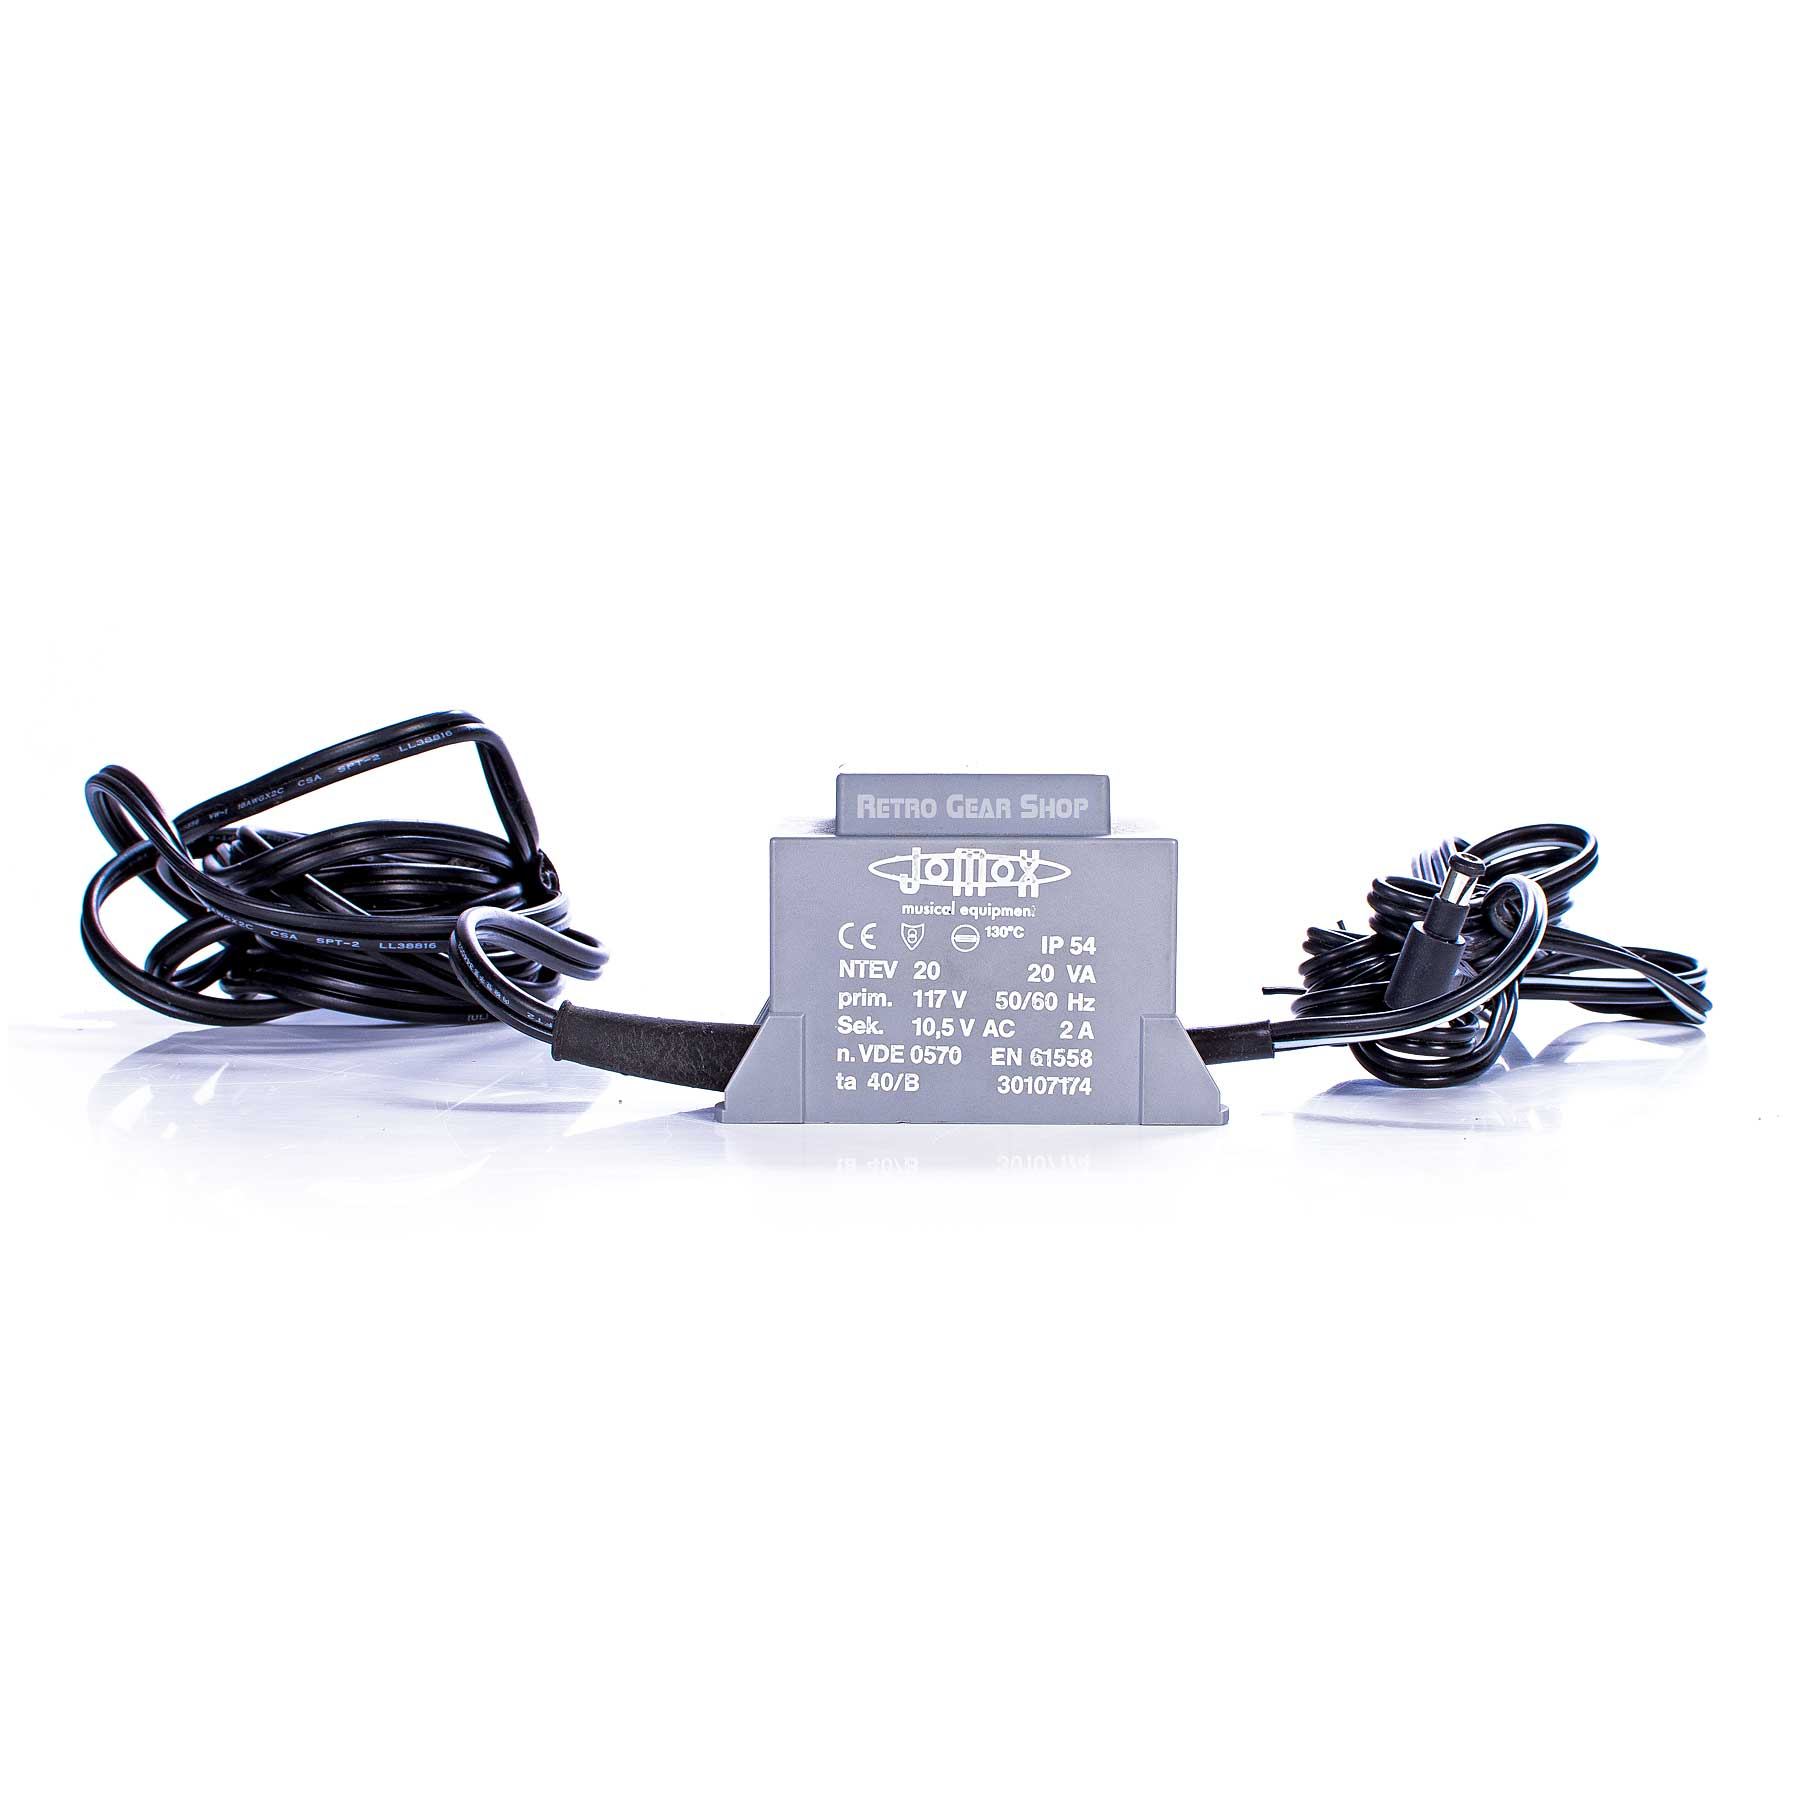 Jomox Xbase 888 Power Supply